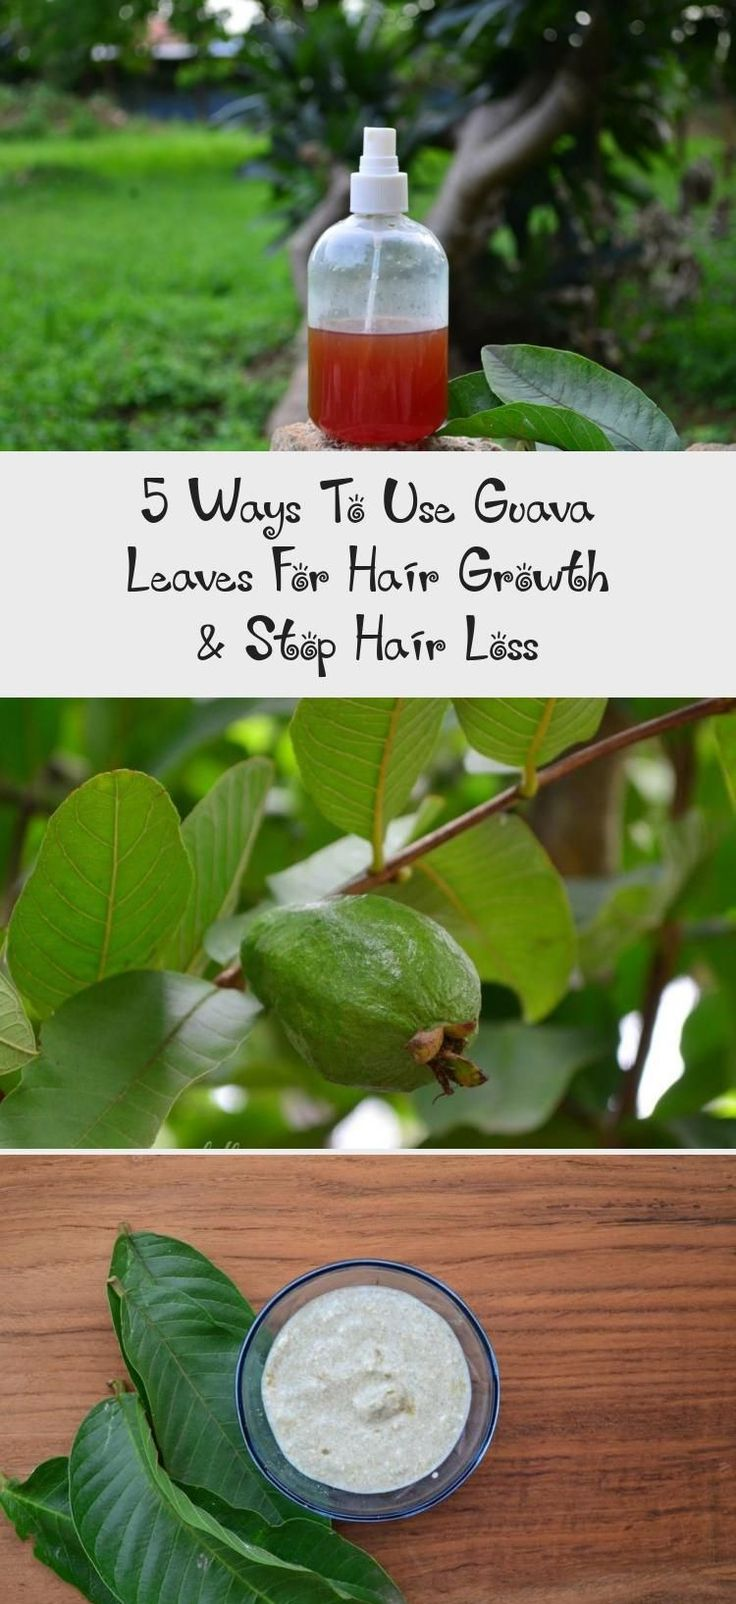 5 ways to use guava leaves for hair growth